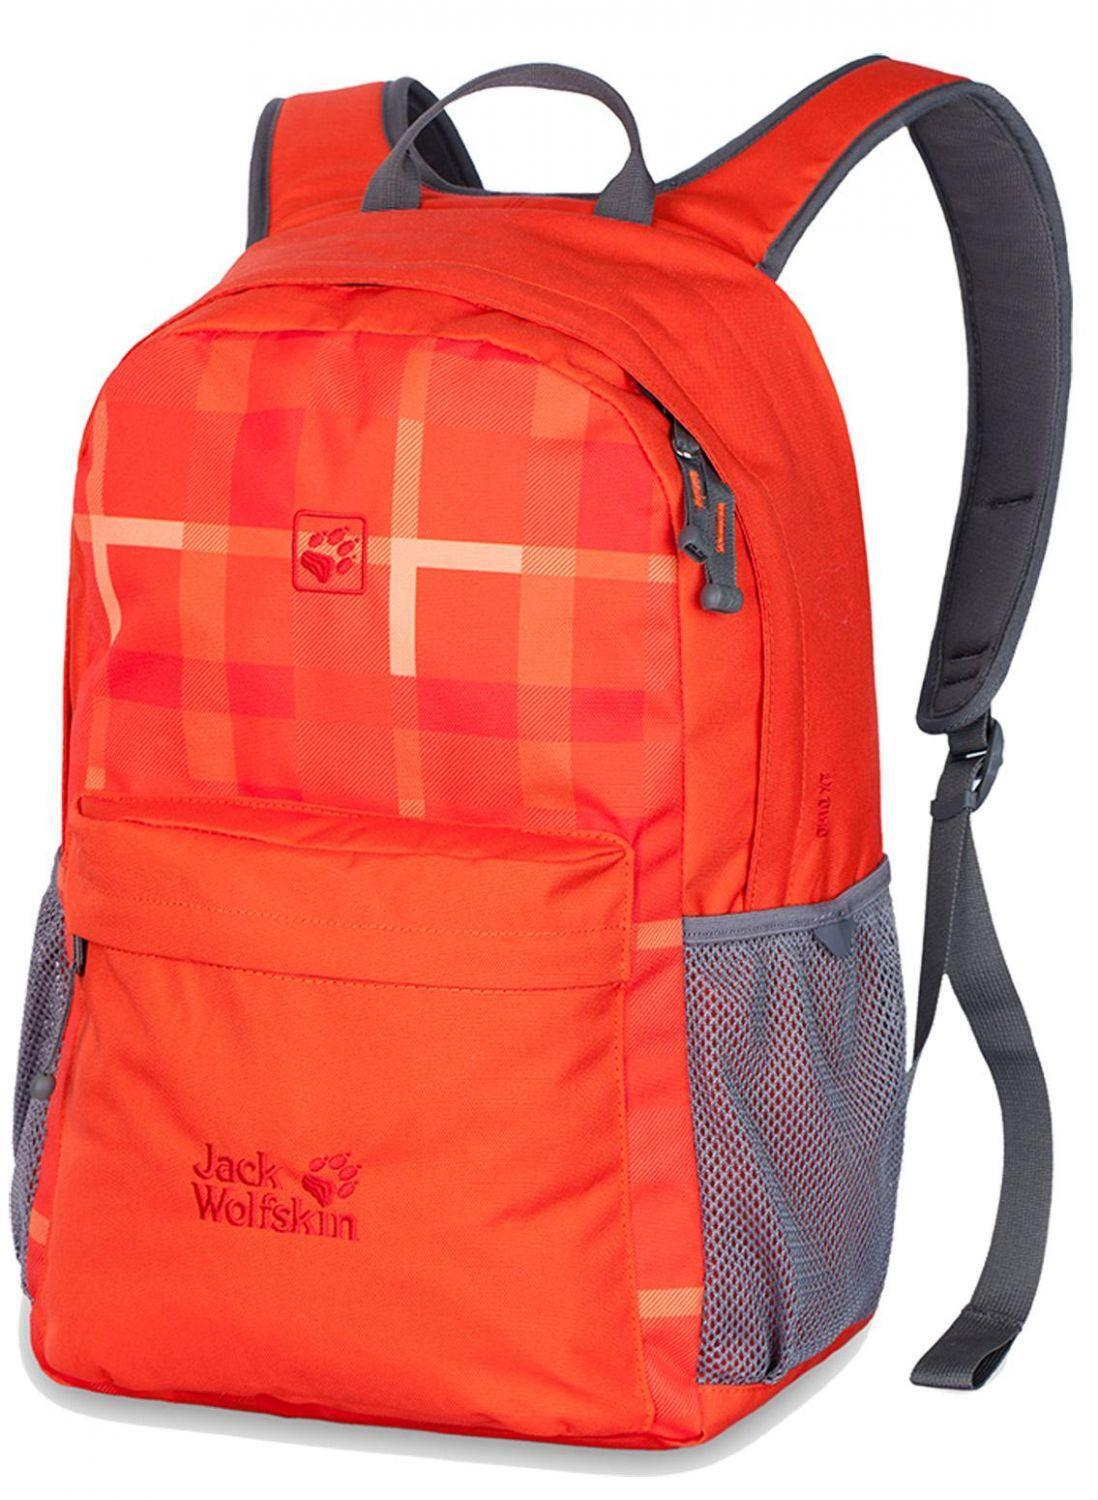 jack-wolfskin-ohio-xt-laptoprucksack-farbe-7939-lobster-red-woven-check-, 30.00 EUR @ sportolino-de